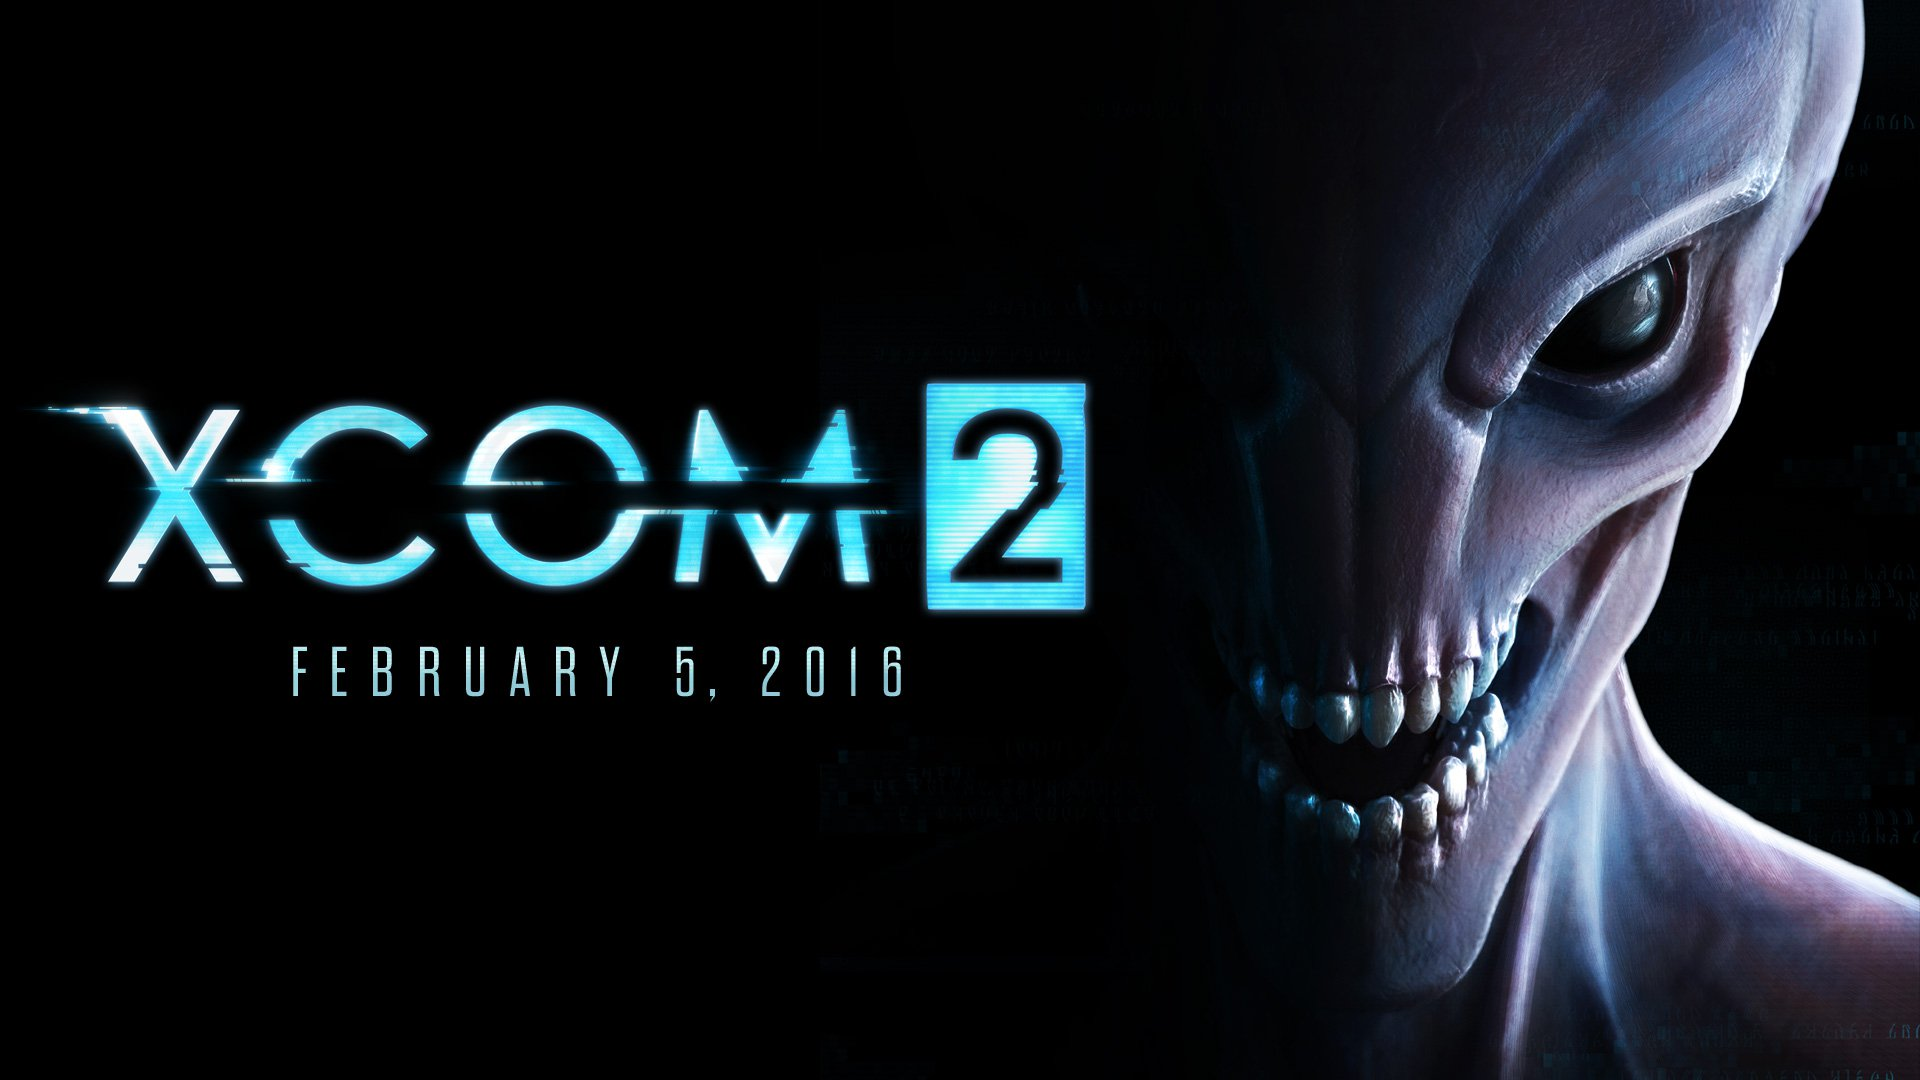 """XCOM 2"" Delayed to 2016 - It Was Just Announced, So No Harm"